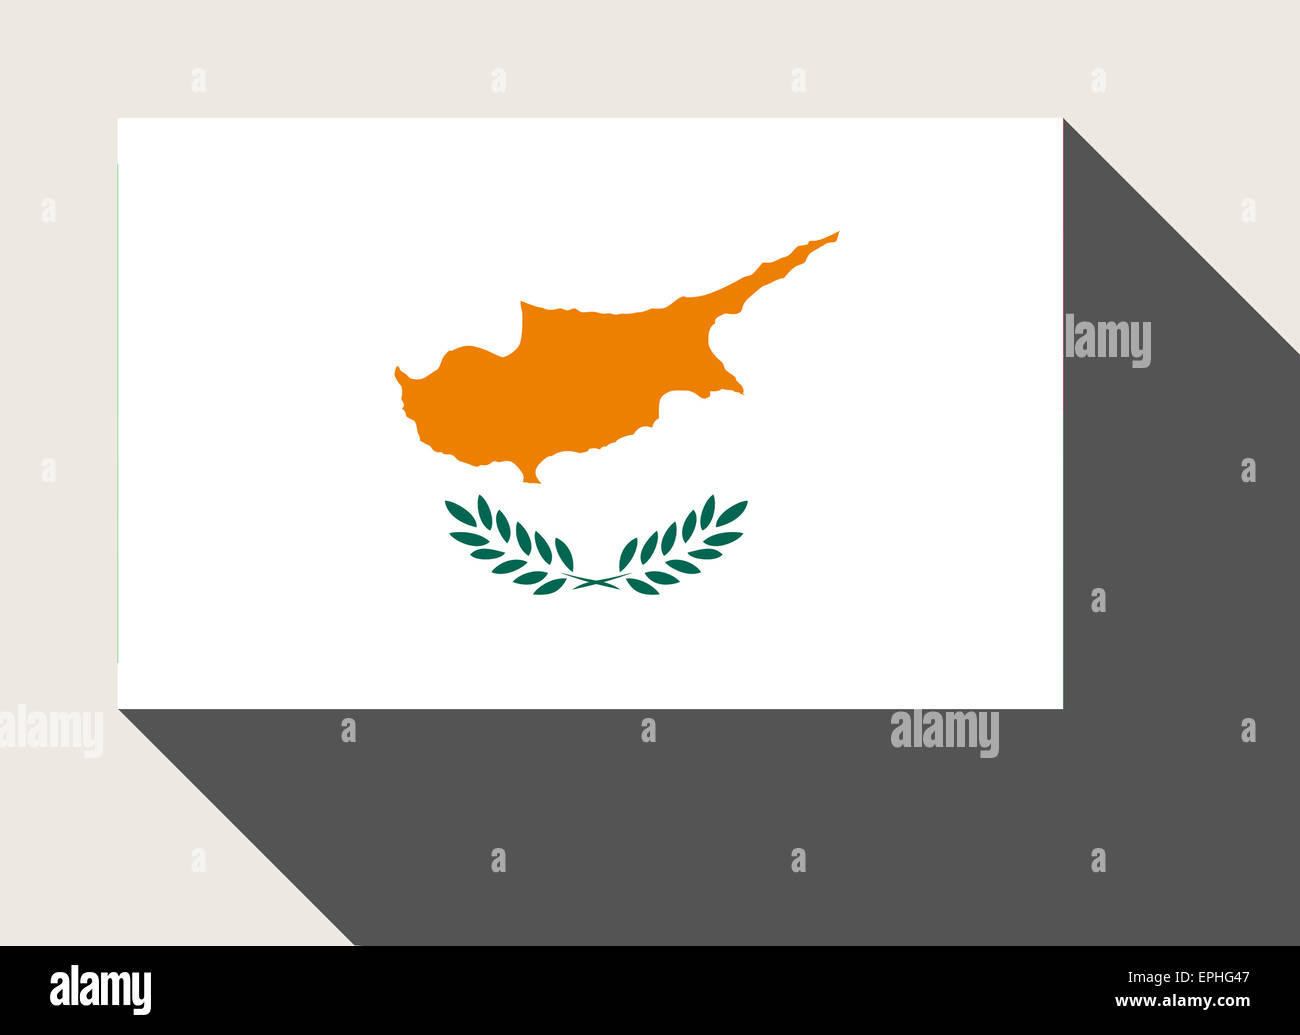 Cyprus flag in flat web design style. - Stock Image